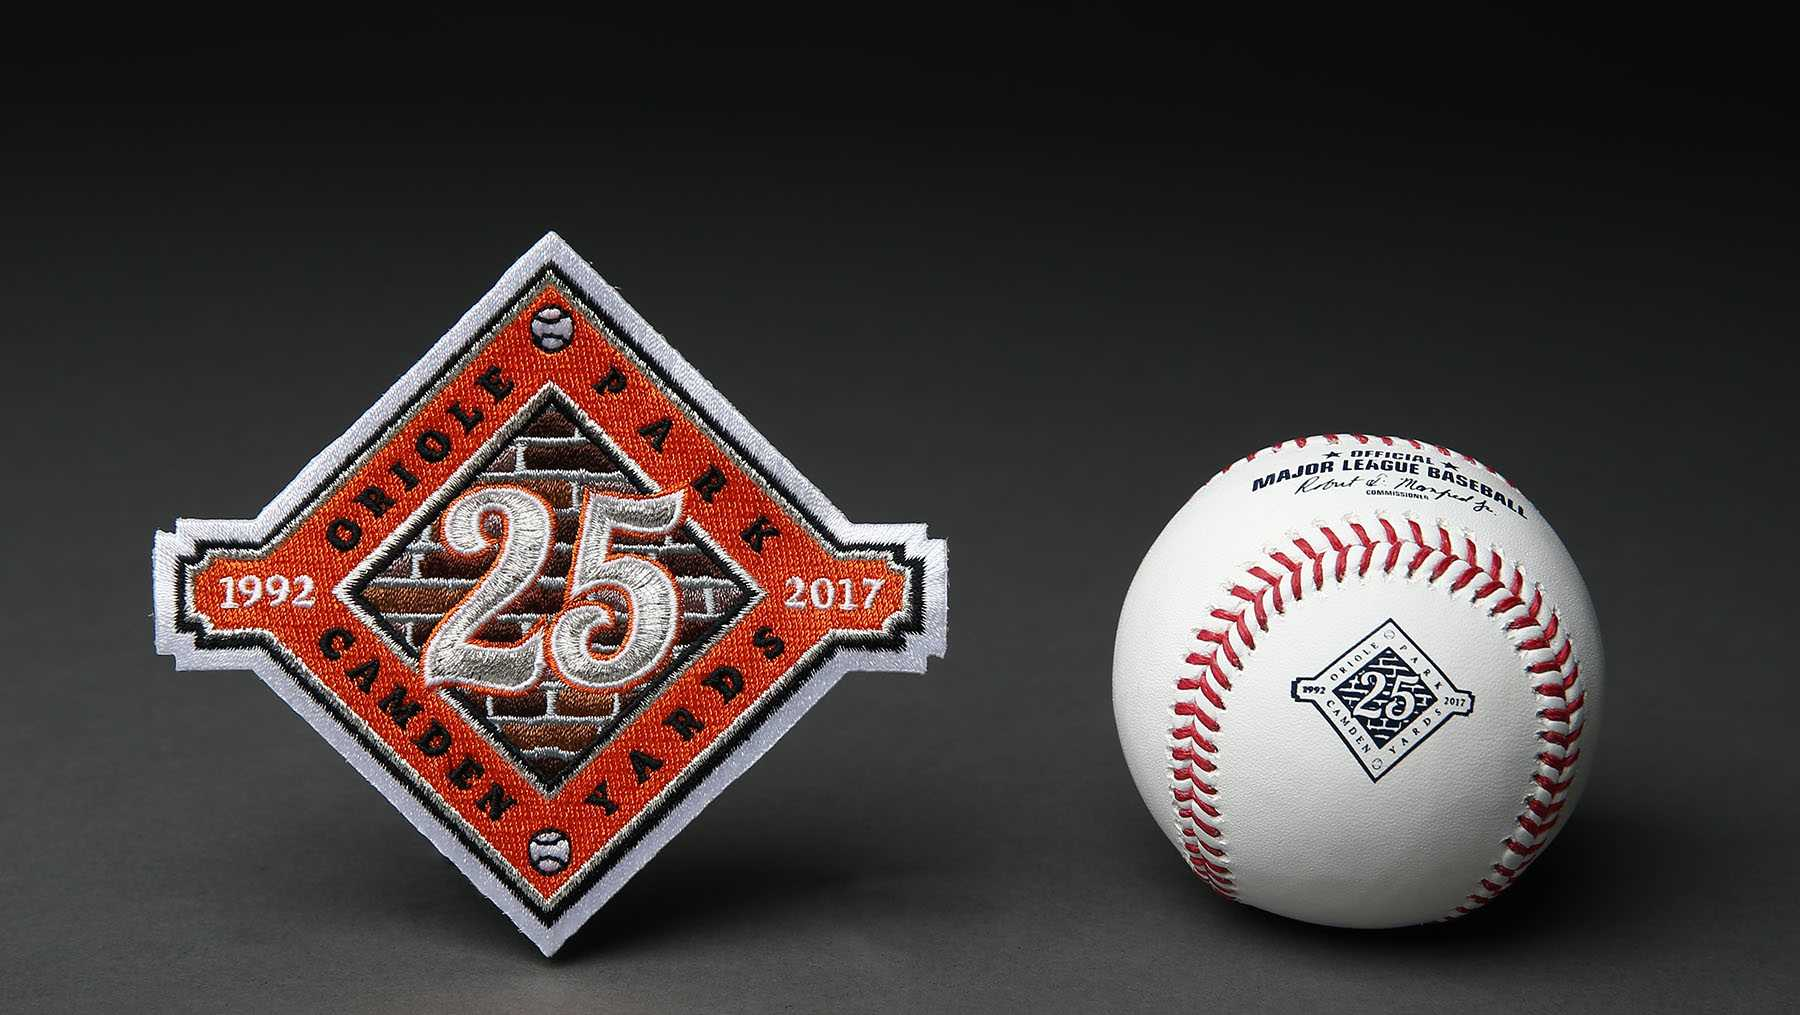 The upcoming 2017 season will mark the 25th anniversary of Oriole Park at Camden Yards,  To commemorate the occasion, the Orioles introduced a commemorative logo.